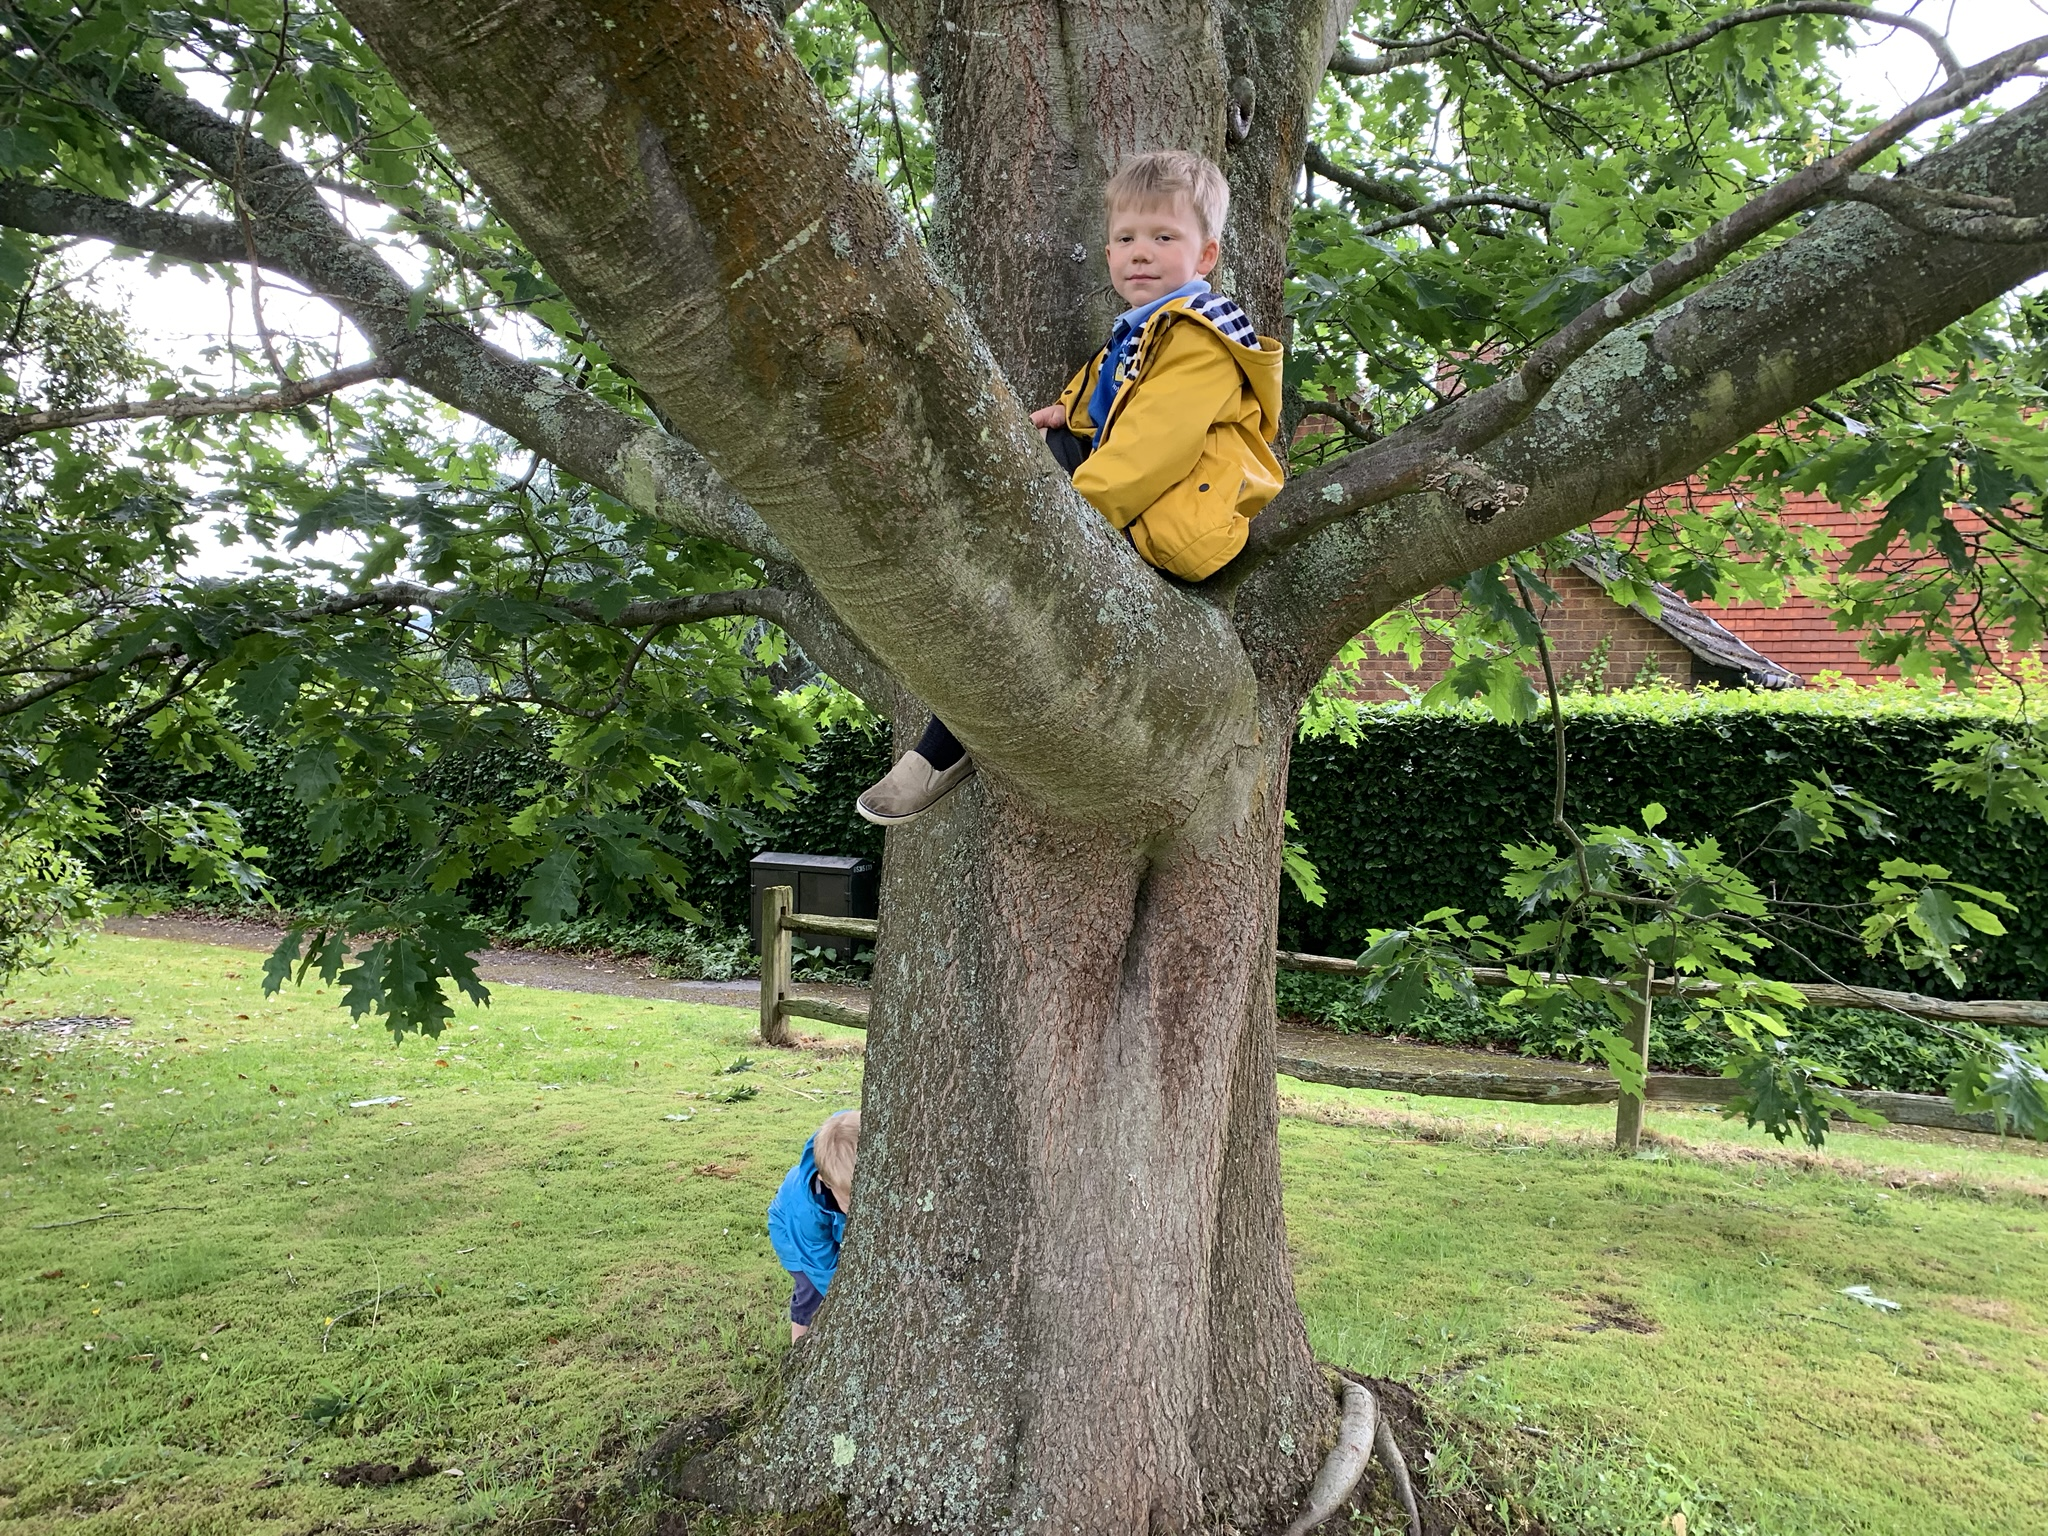 Local street tree, boy climbing tree